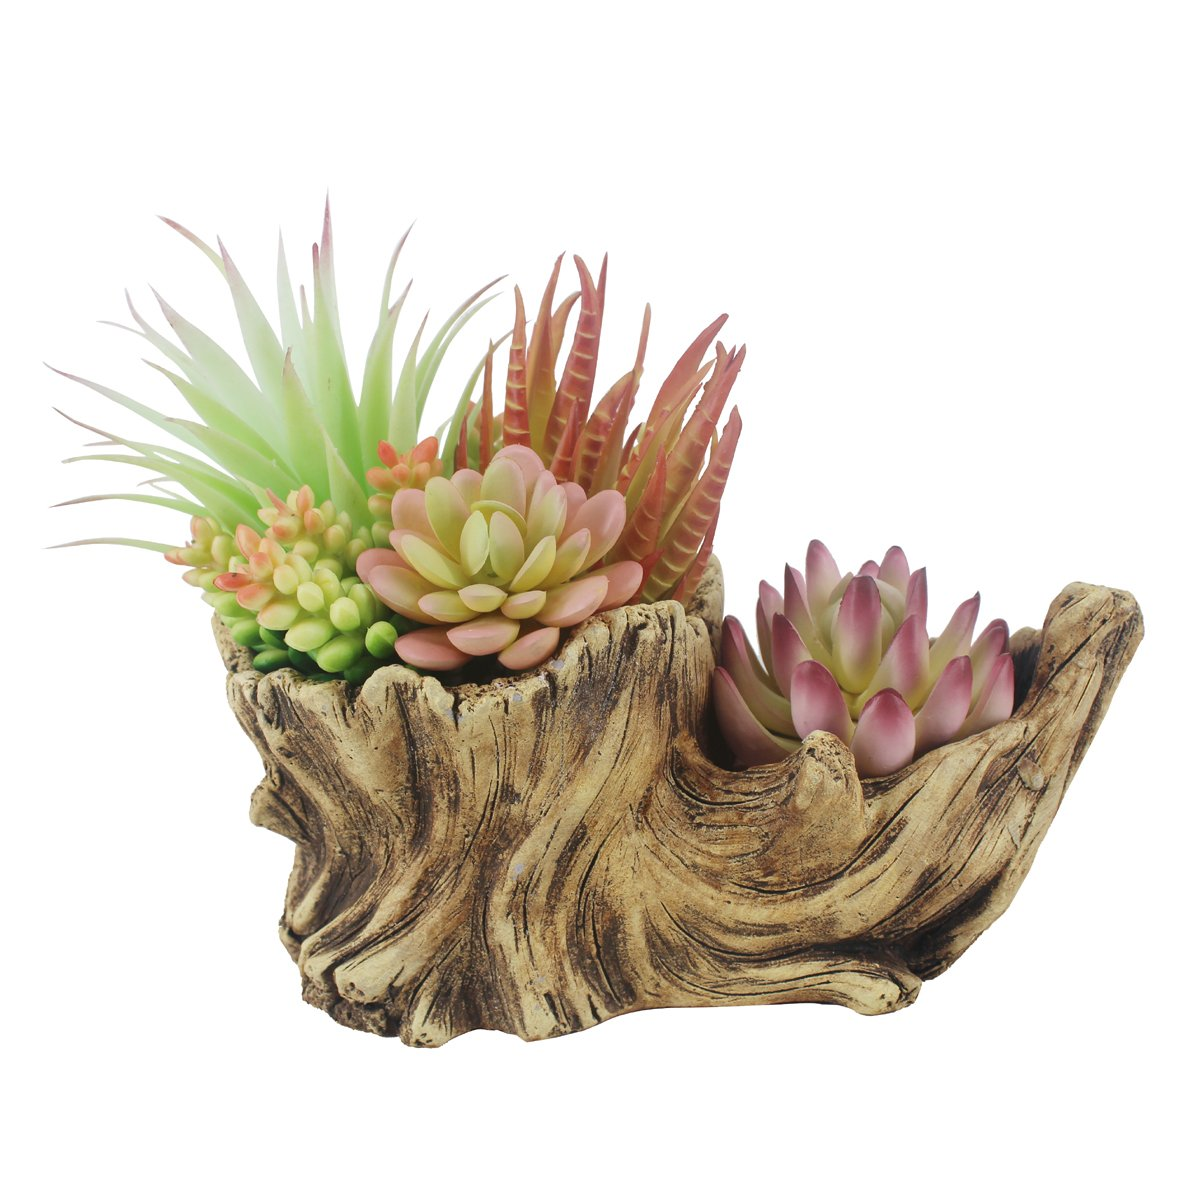 Greatflower Fake Resin Driftwood Stump Pot with Artificial Succulent Arrangement by Greatflower (Image #7)